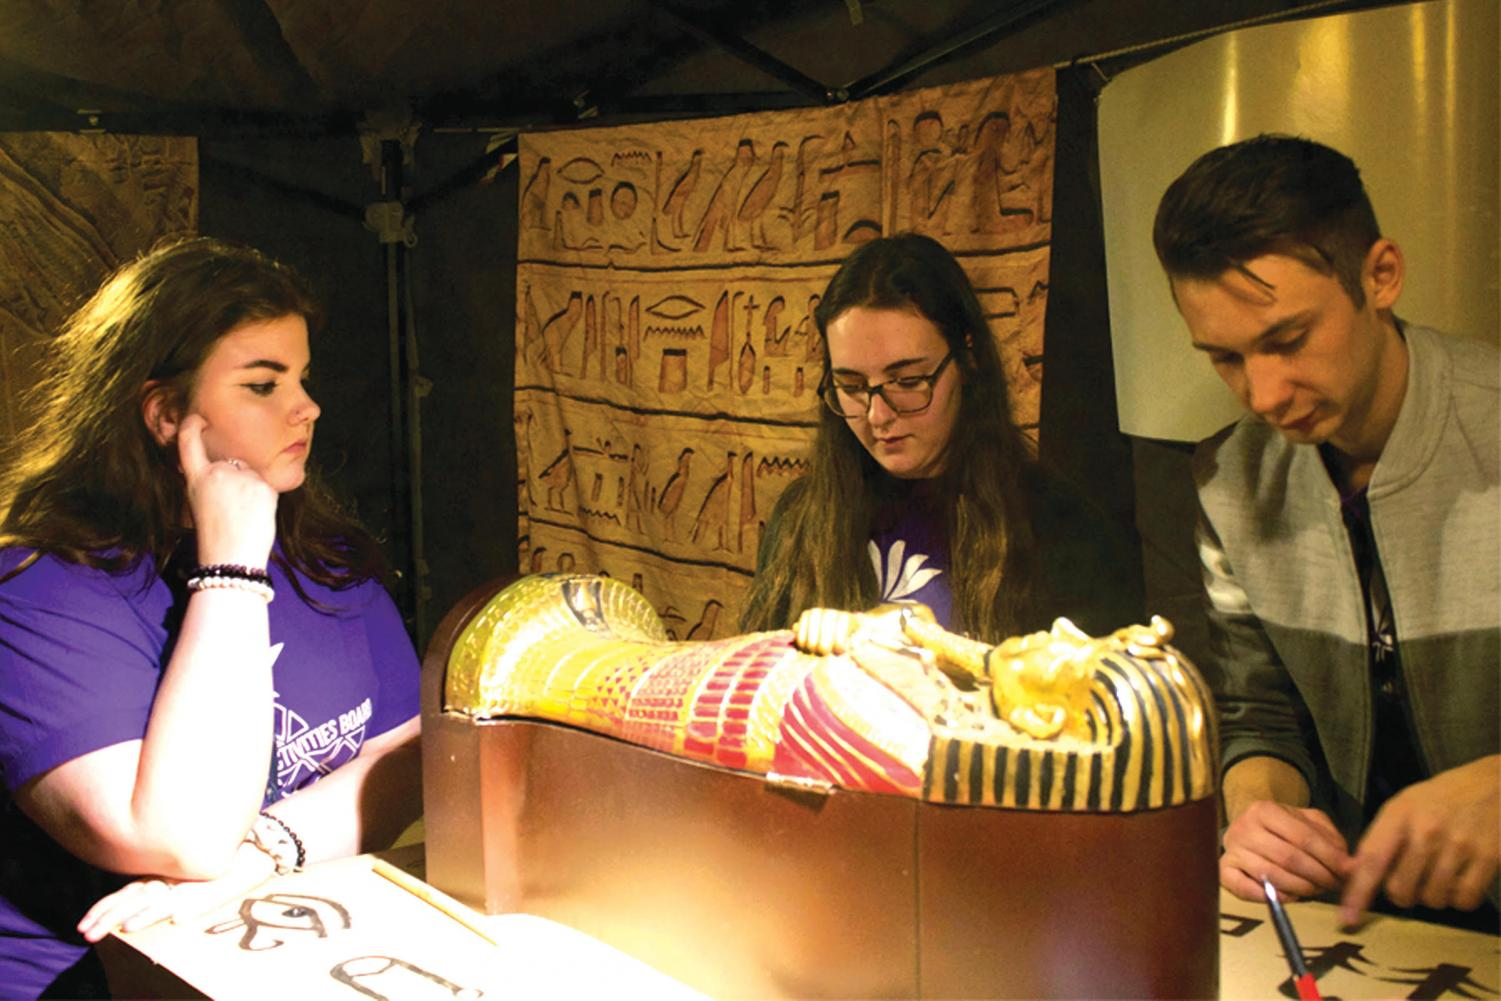 Freshman Emily Porter, sophomore Madeline Rexroad and junior Jake Taylor to try to decipher hieroglyphics in an Ancient Egyptian-themed escape room at CAB's event Saturday night.